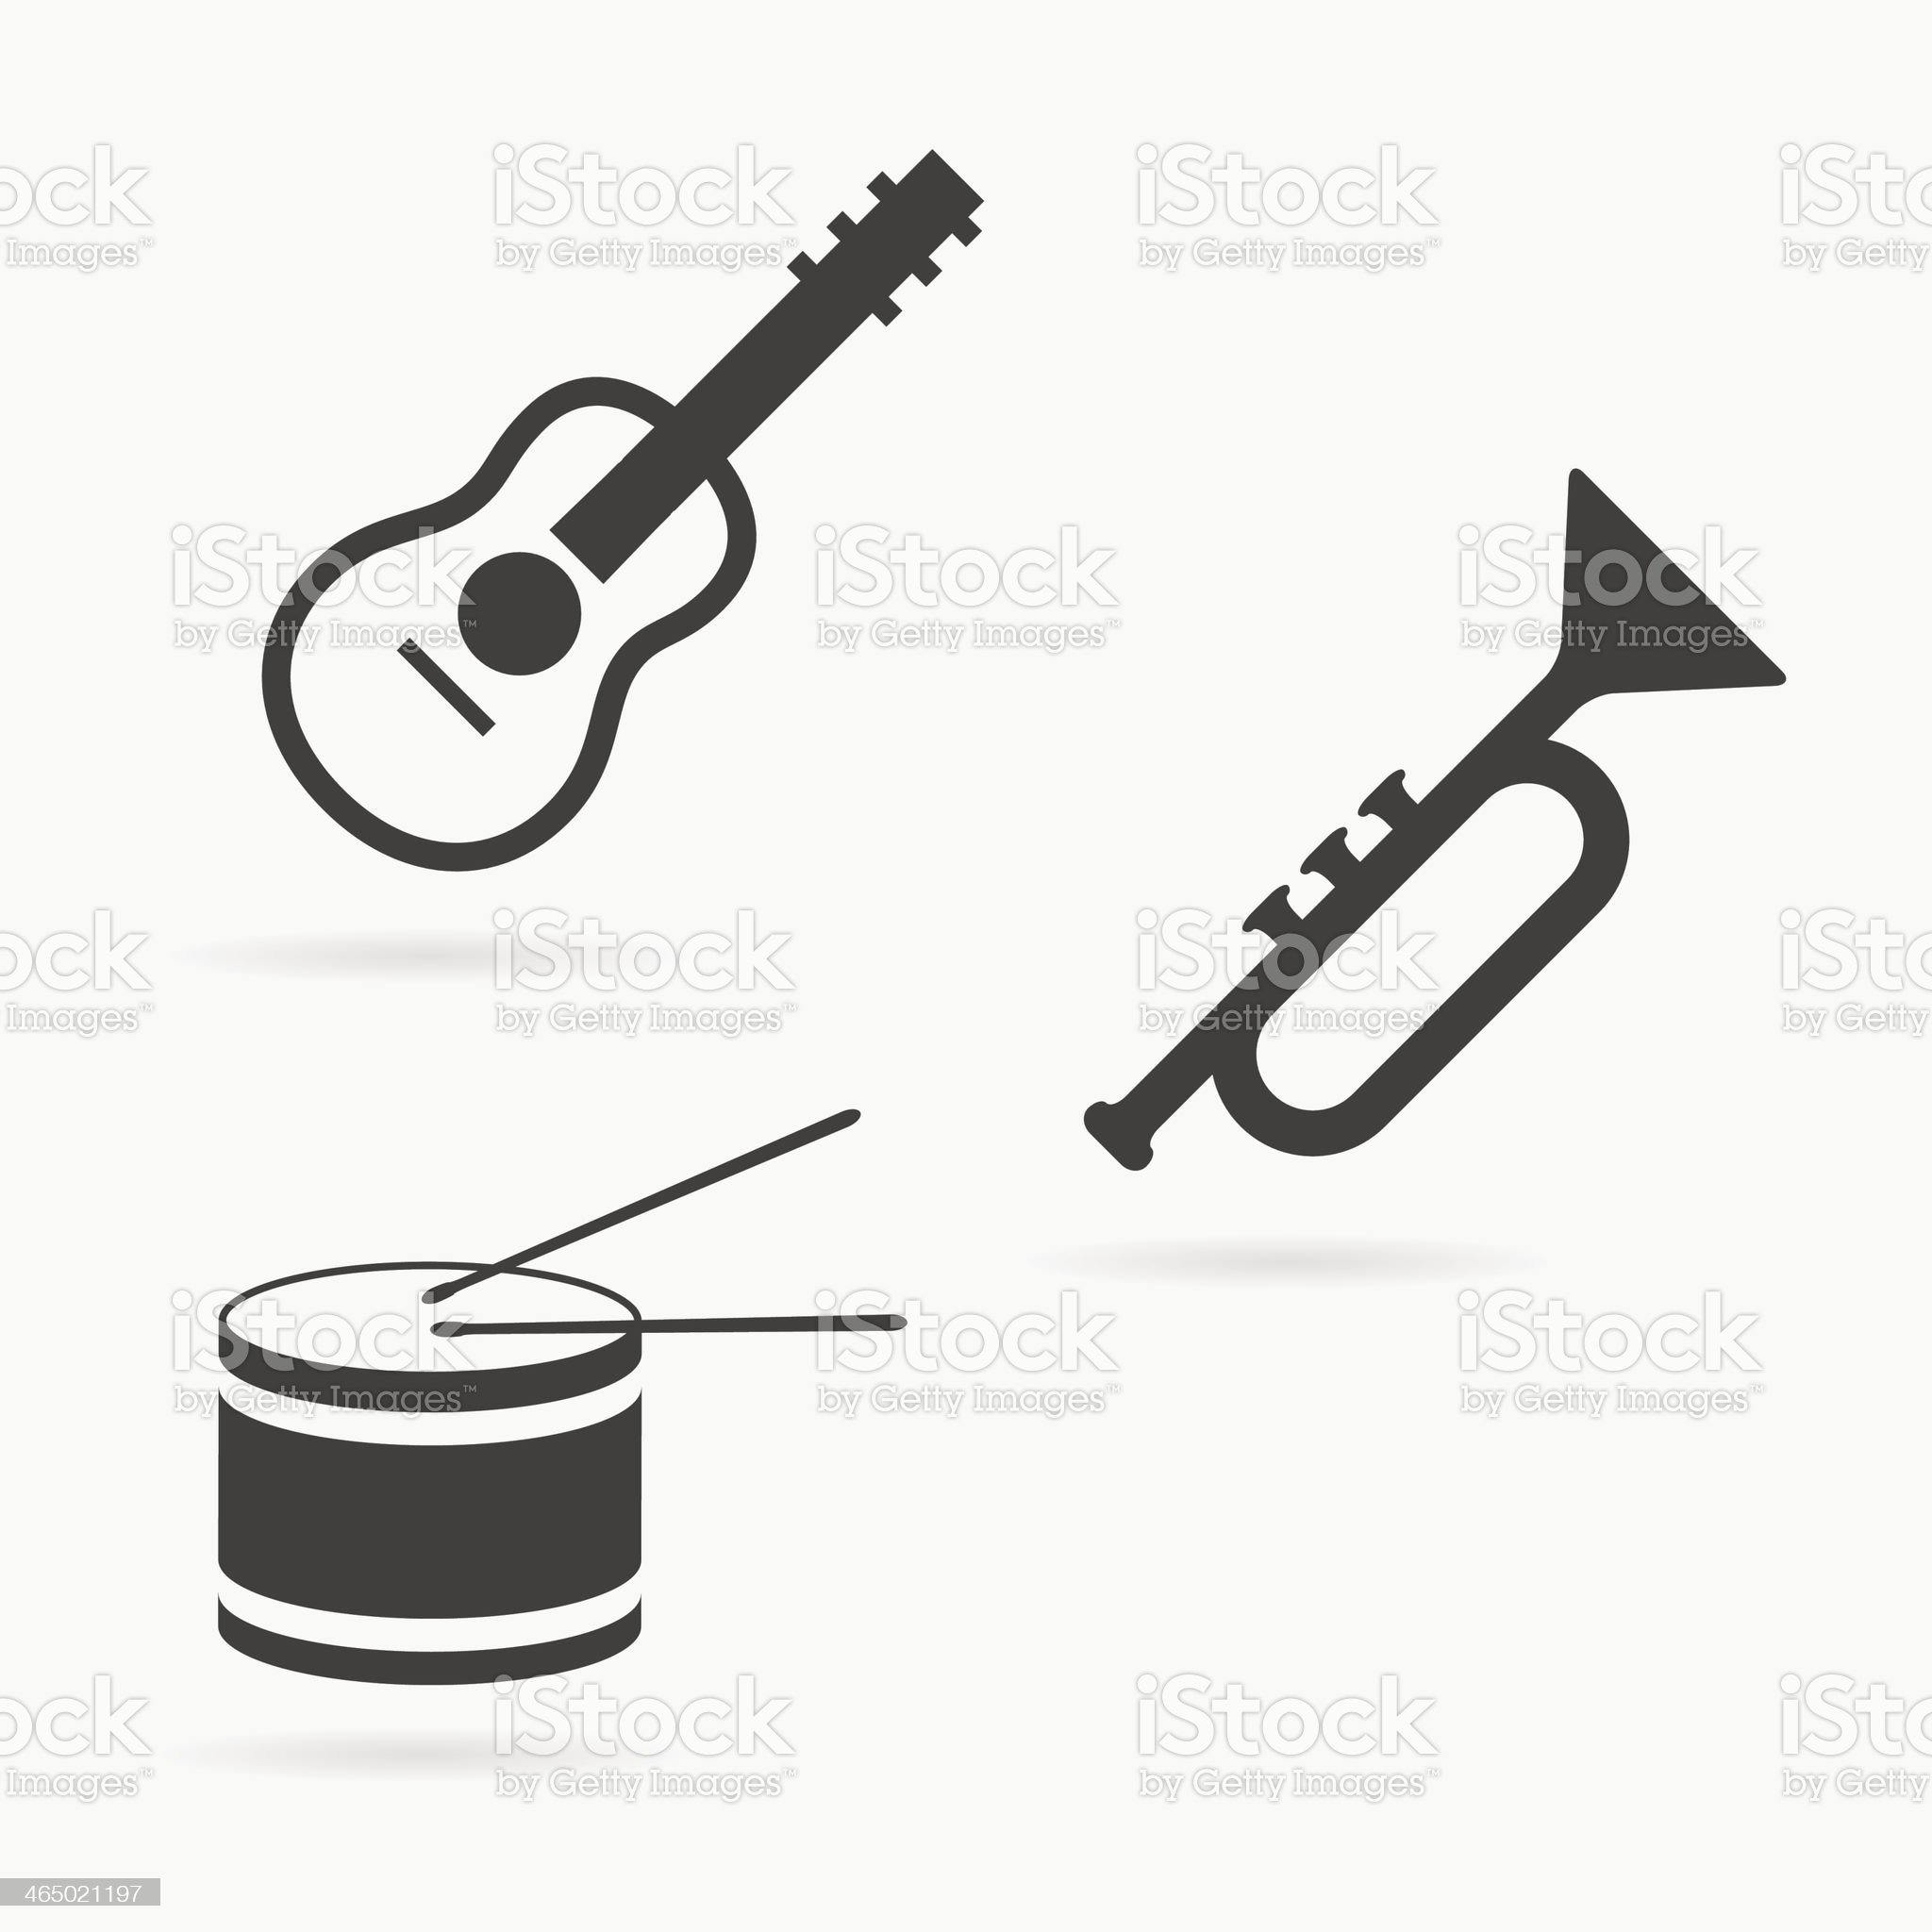 Vector instrument icons royalty-free stock vector art